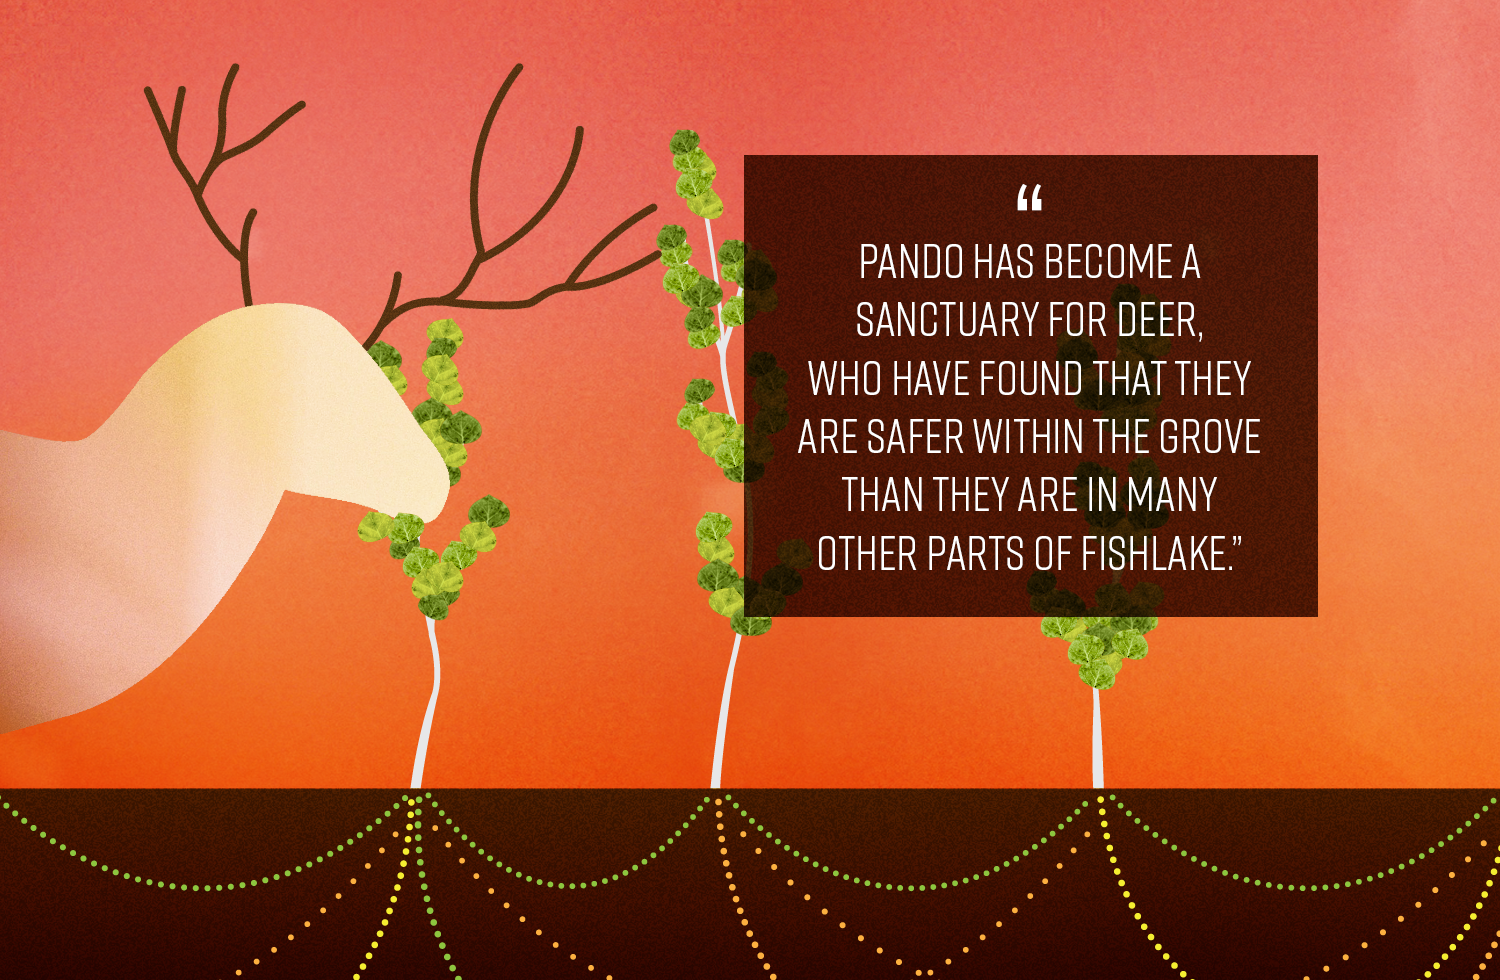 Pando has become a sanctuary for deer.